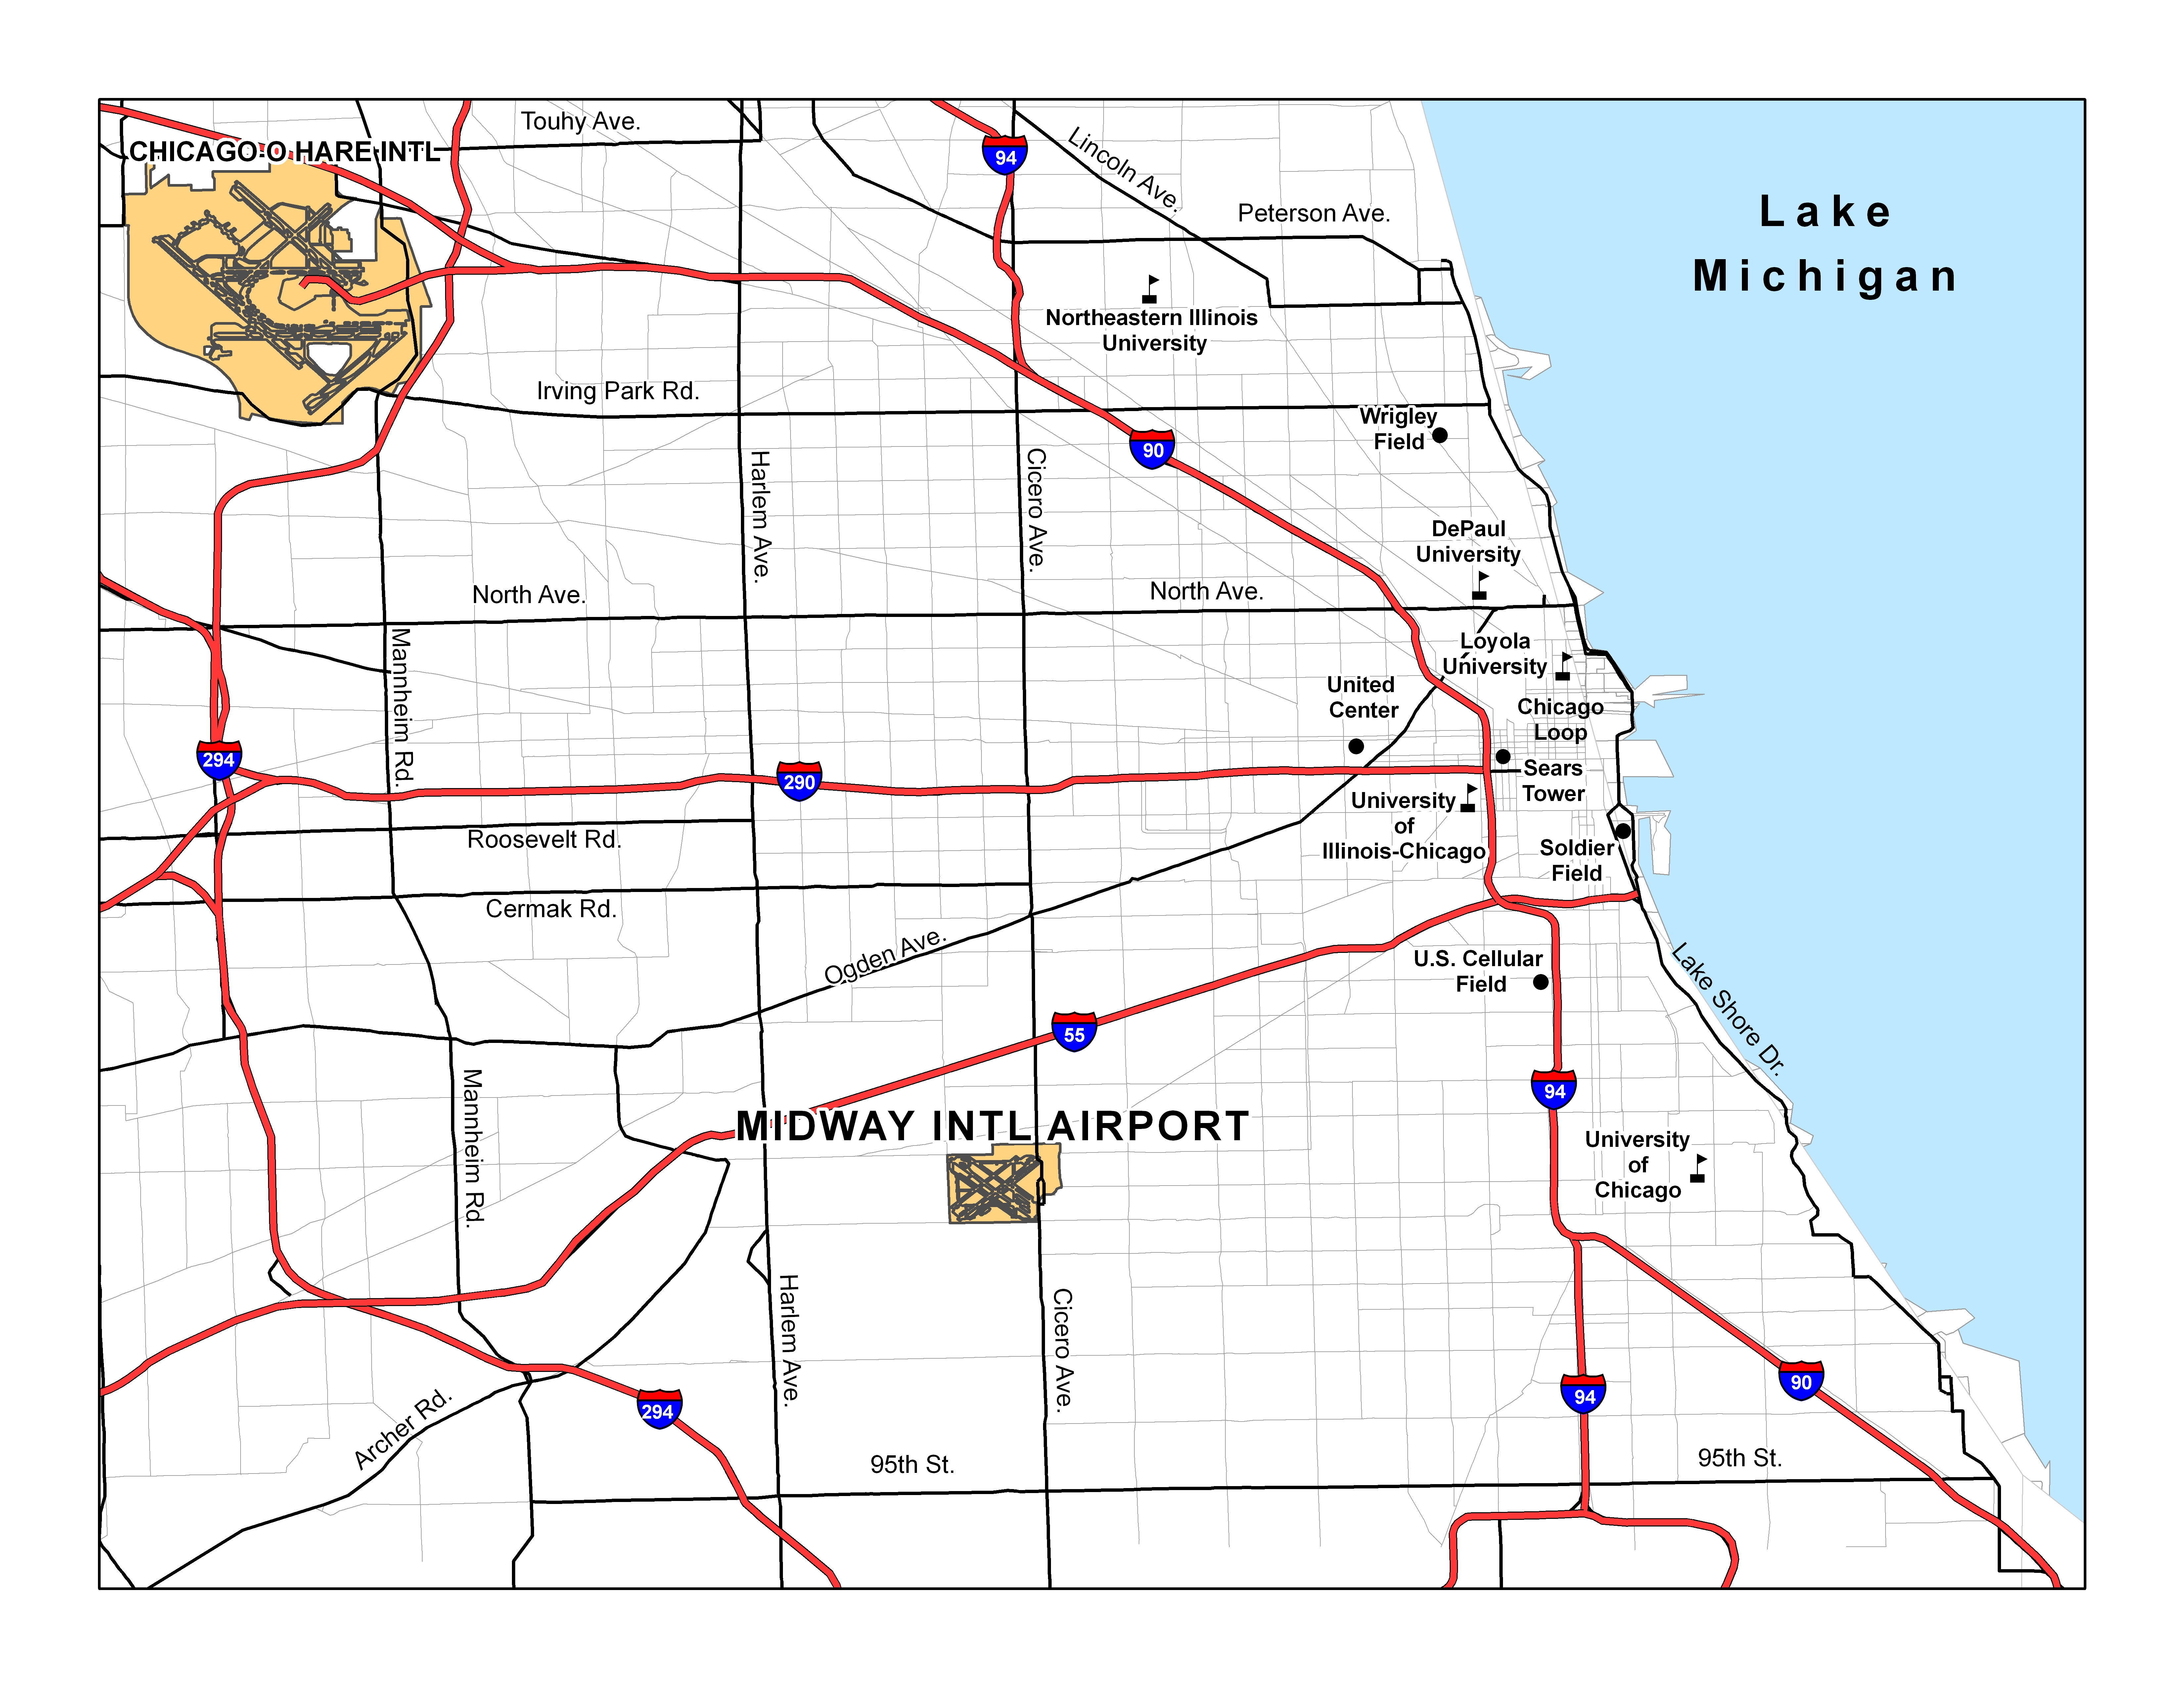 the greater chicago area featuring chicago midway and o'hare internationalairports. chicago midway international airport